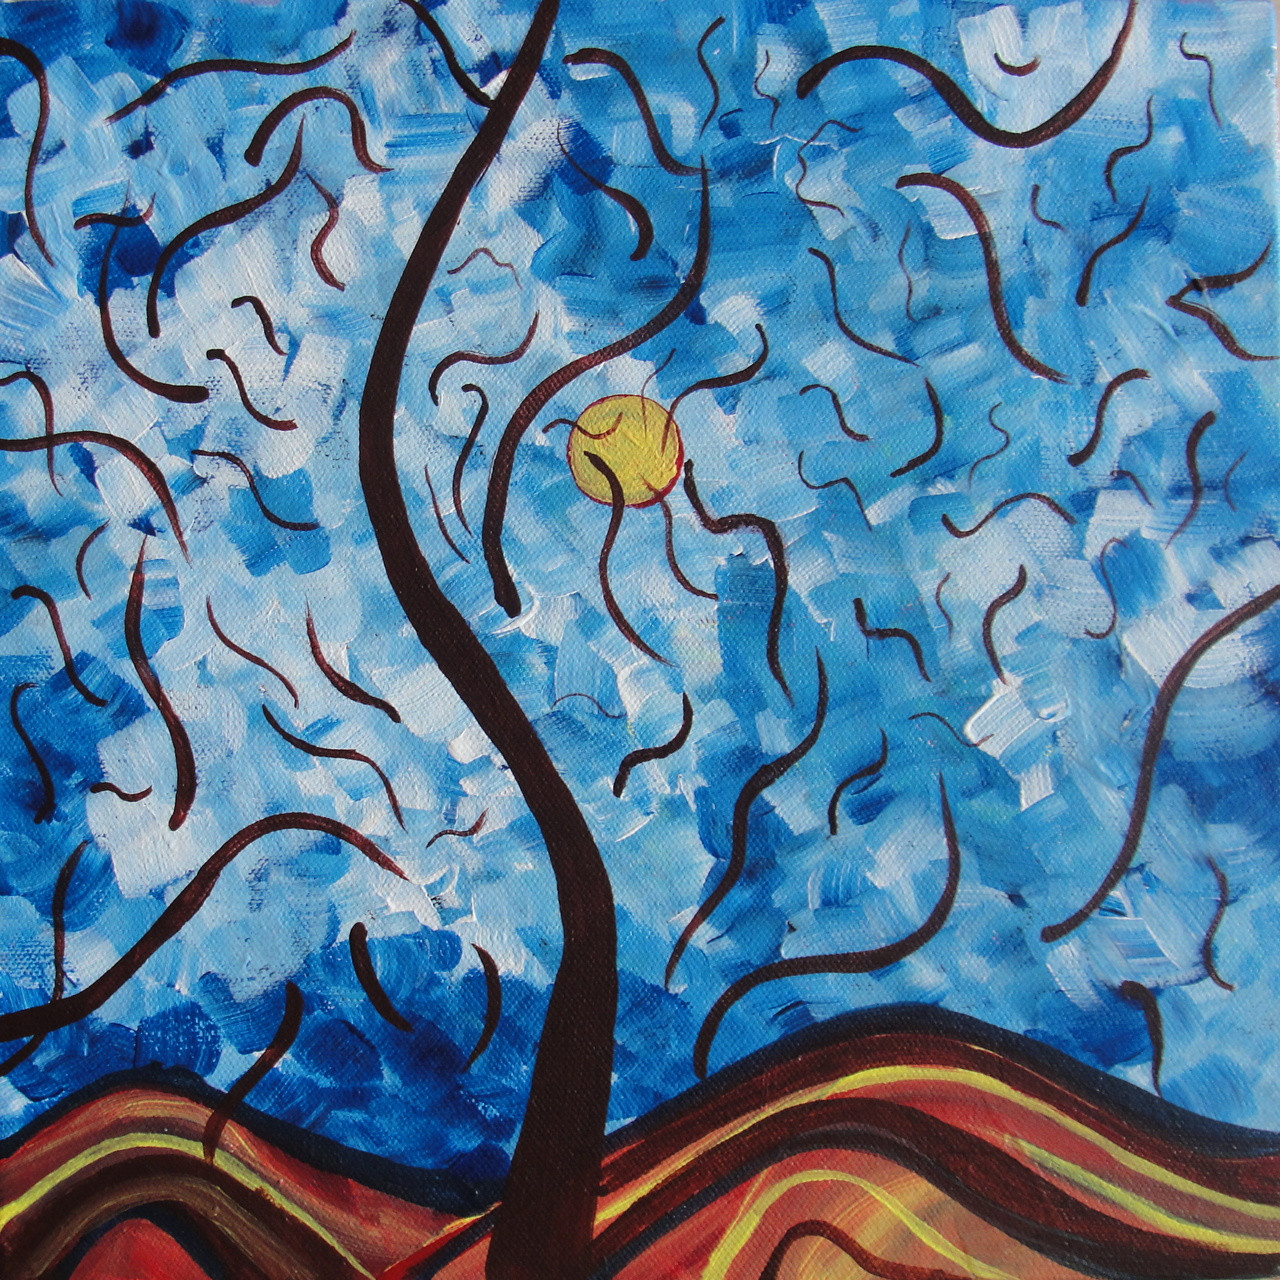 buy abstract nature art 12 x 12 inch handmade painting by indhuja